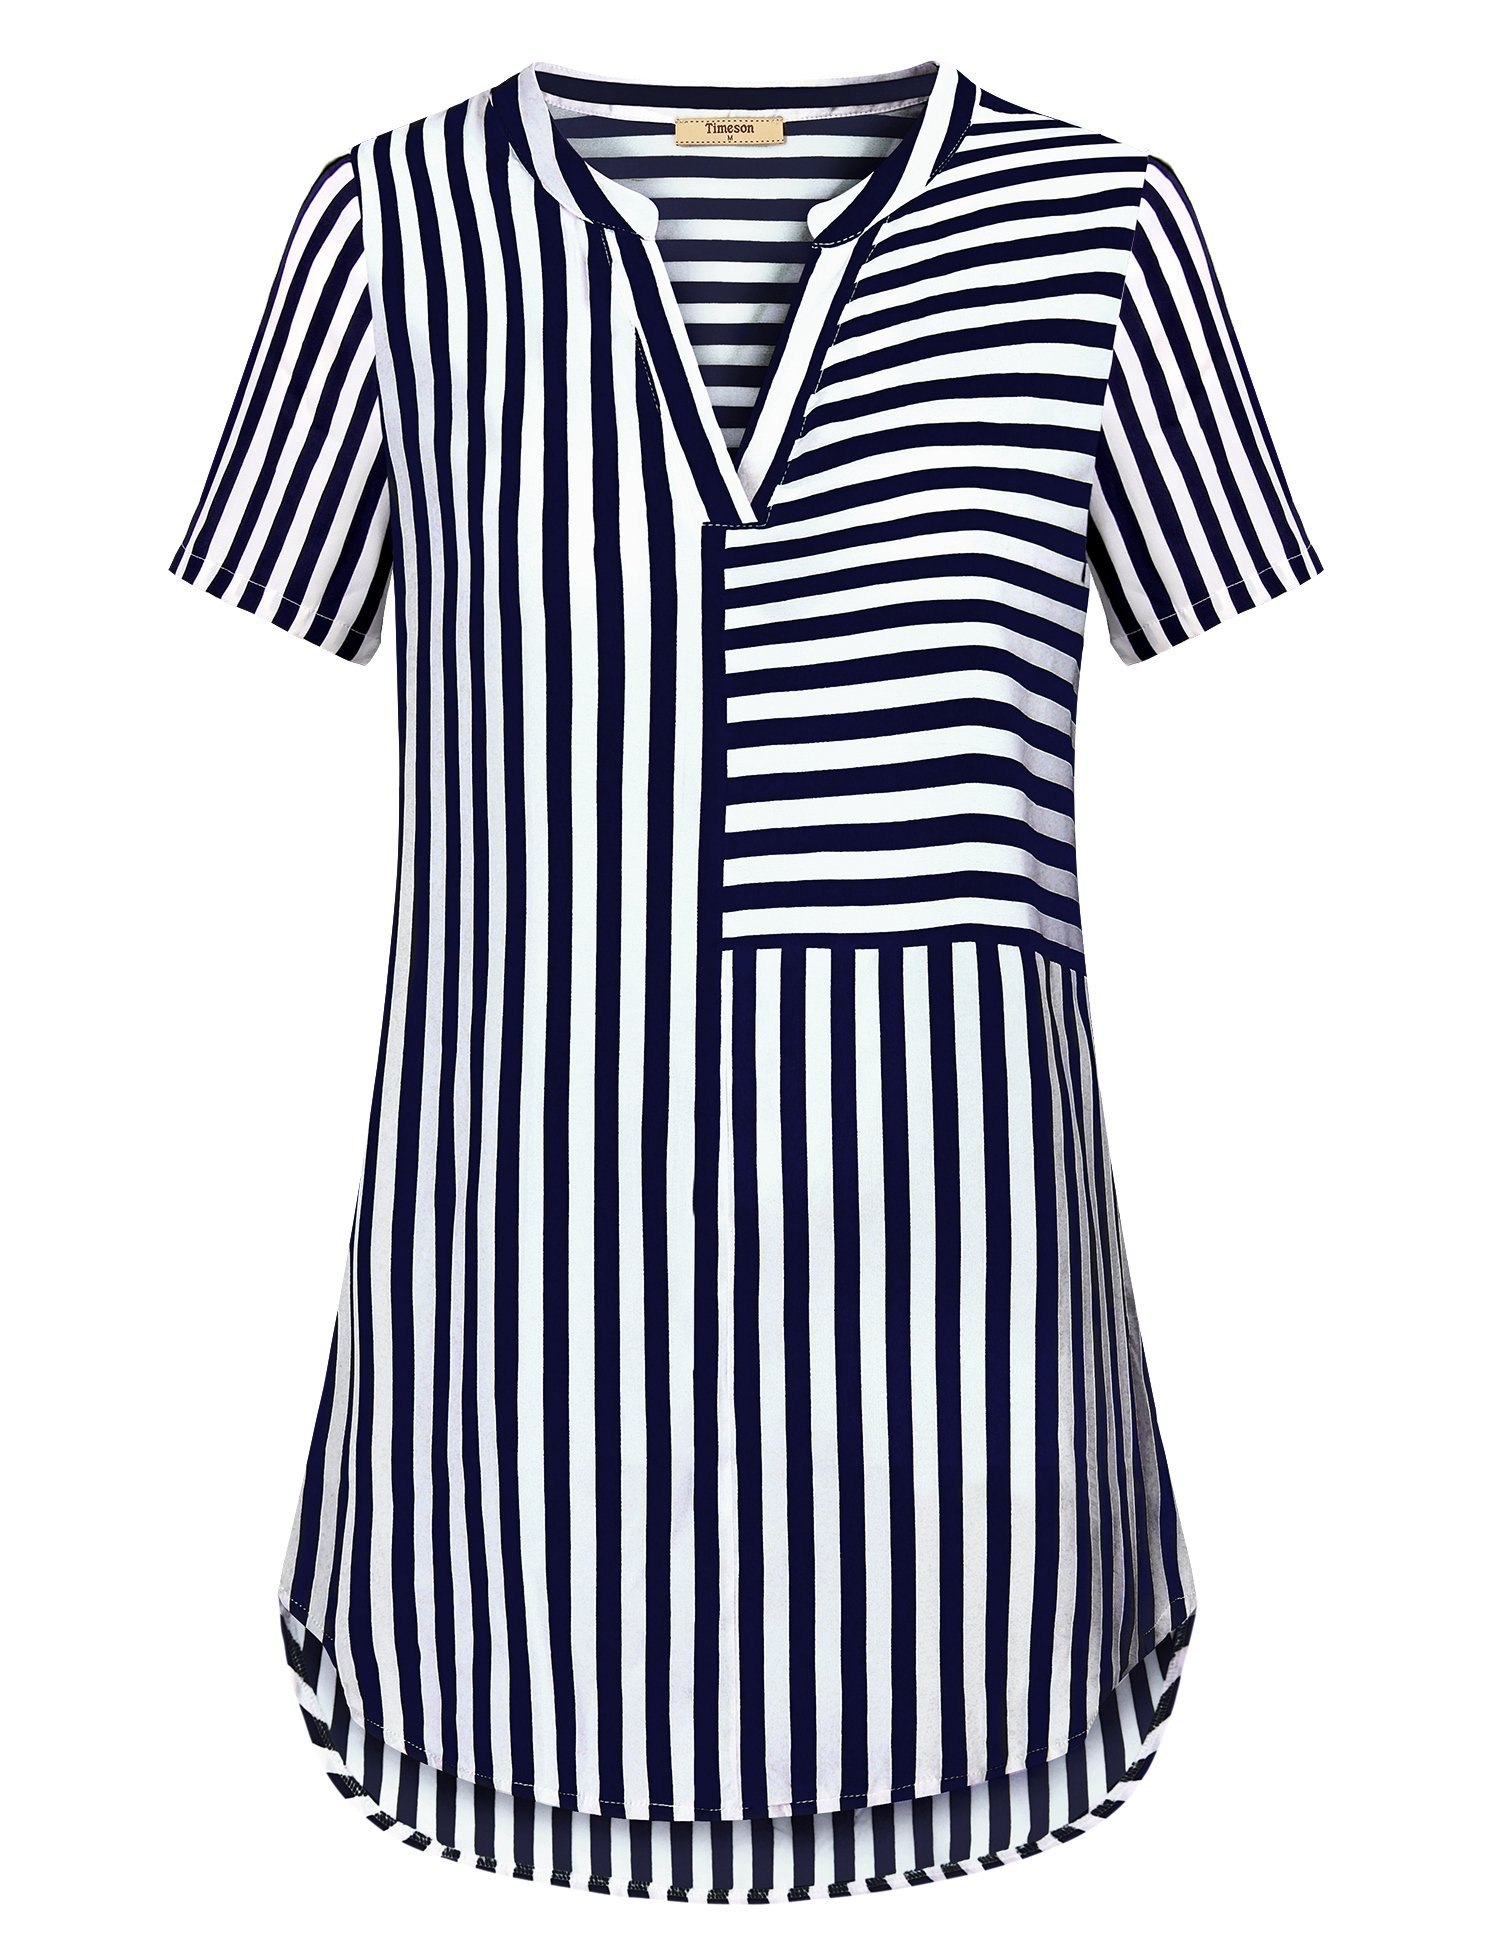 Timeson Casual Business Blouses, Womens V Neck Short Sleeve Summer Blouses Lightweight Cool Slim Fit Flowy Silky Chiffon Henley Shirt Tops Flattering Cozy Striped Blouse Dark Blue Large